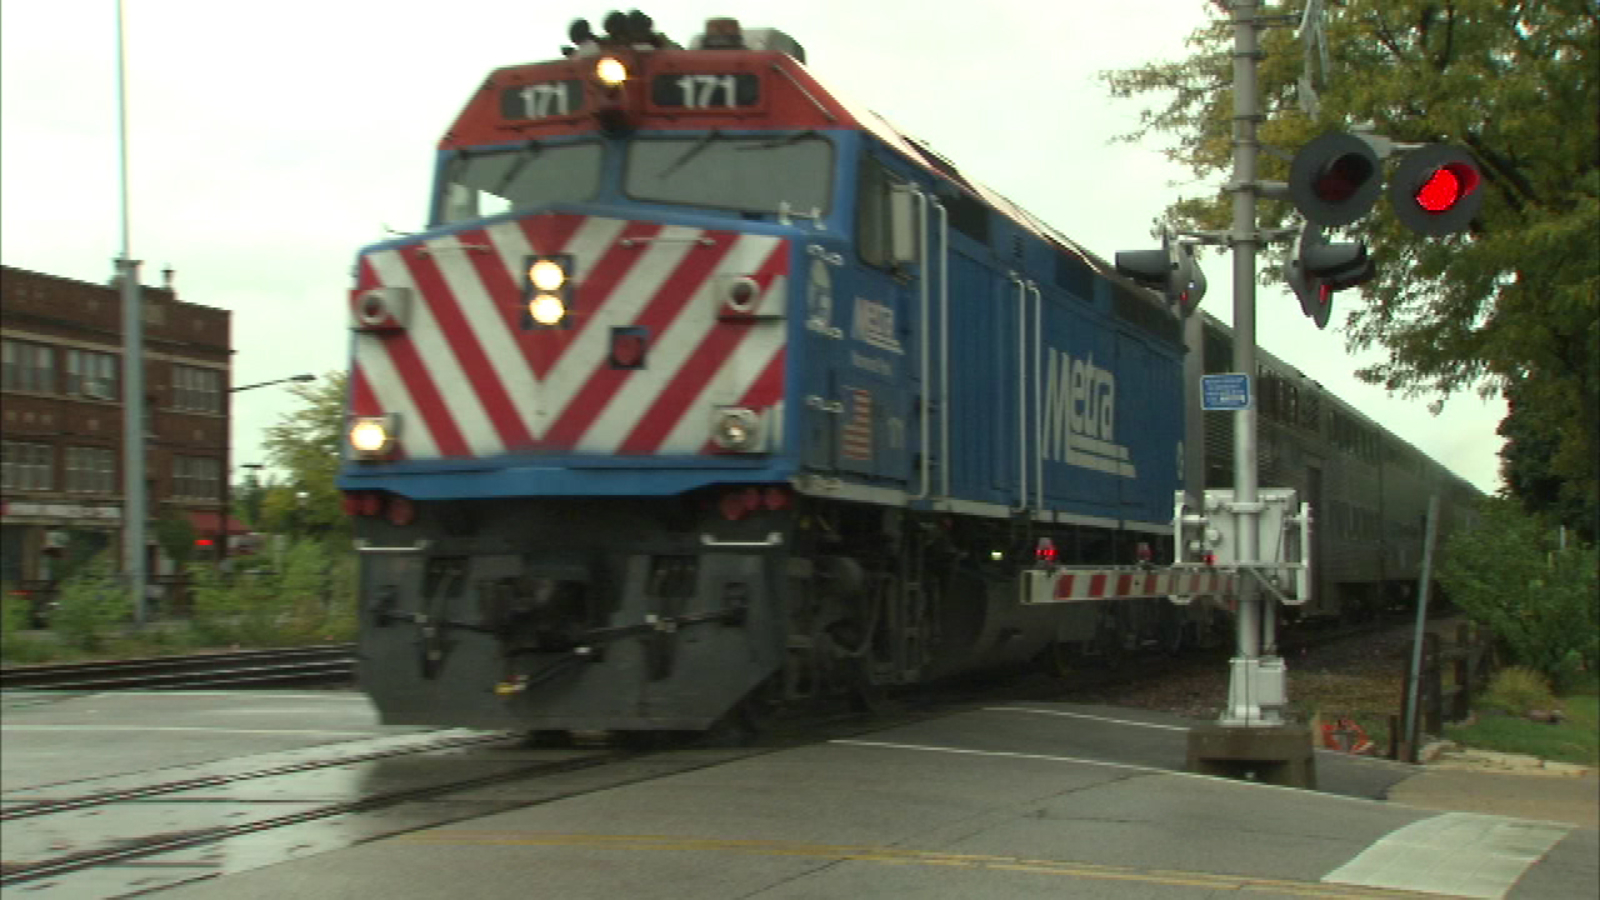 Metra Electric trains stopping in Riverdale after truck hits bridge